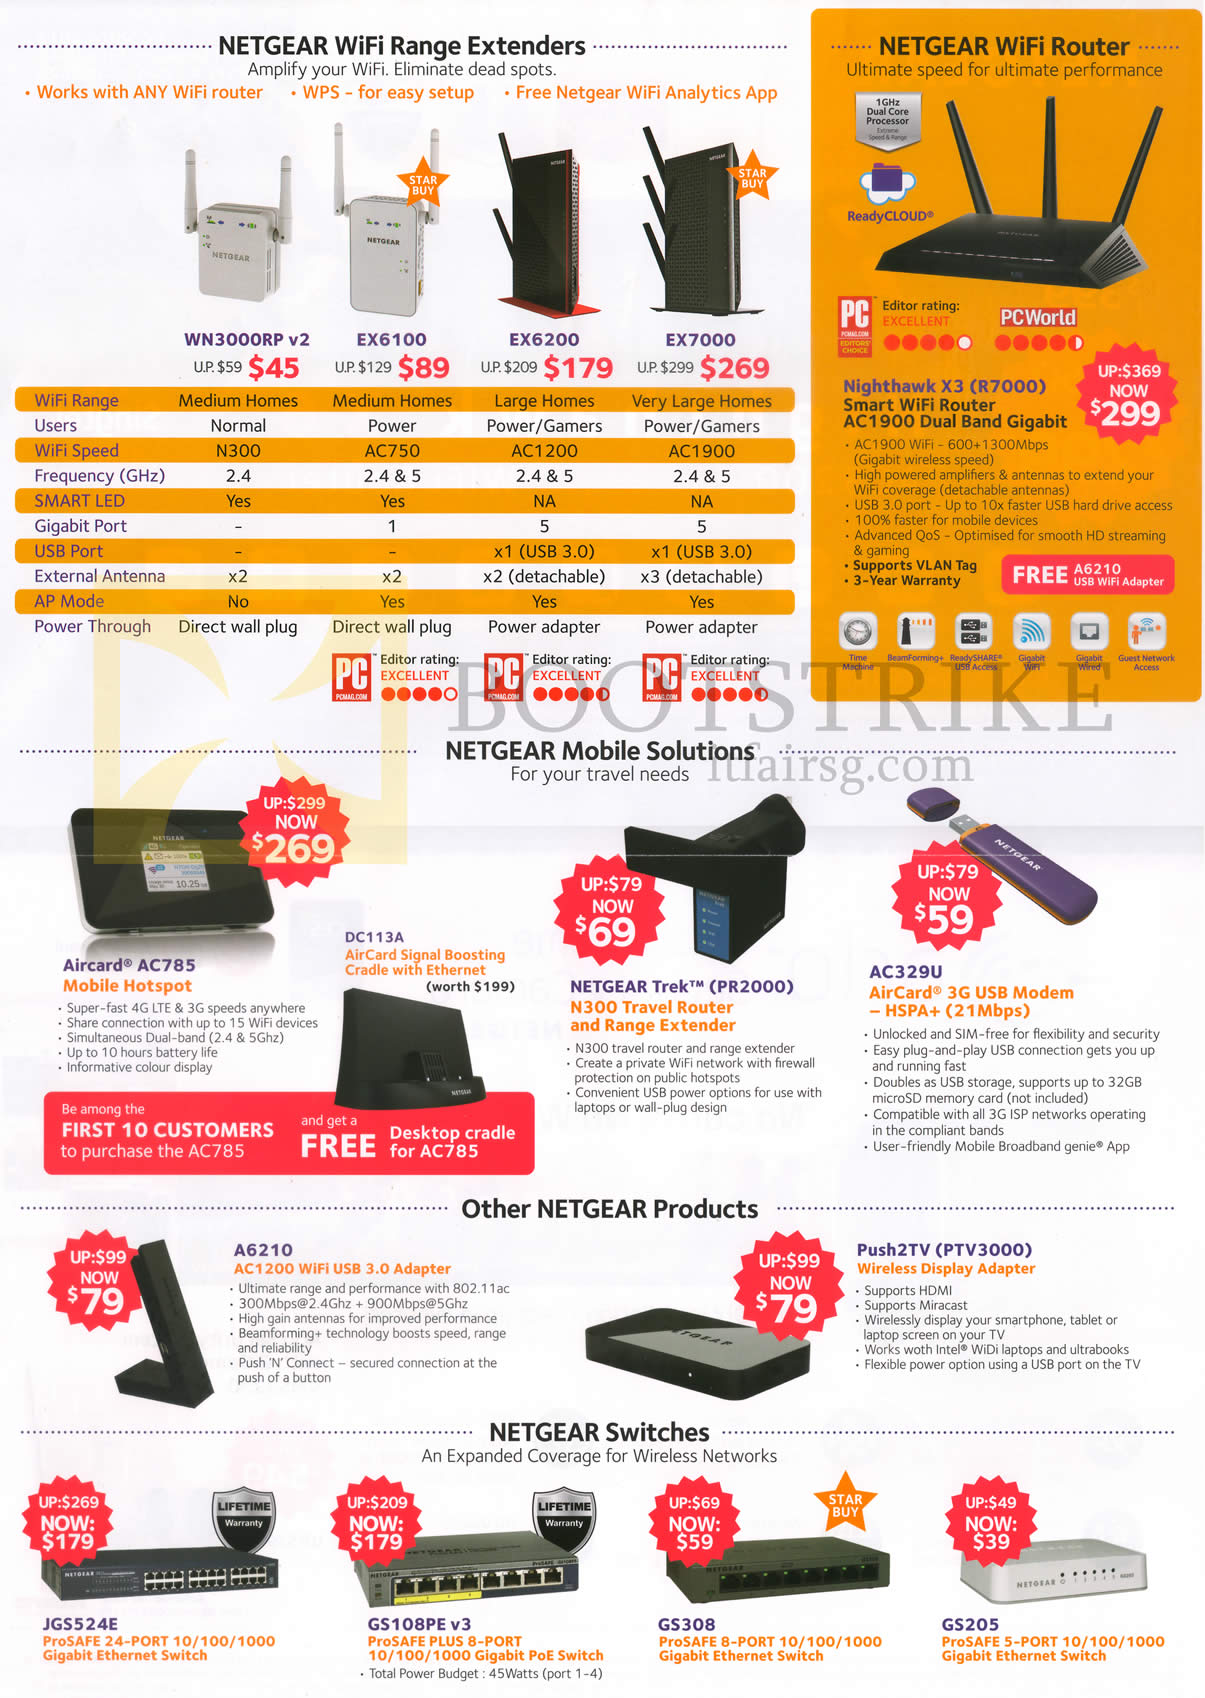 PC SHOW 2015 price list image brochure of Netgear Networking Wifi Range Extenders, Wifi Router, Switches, Mobile Solutions